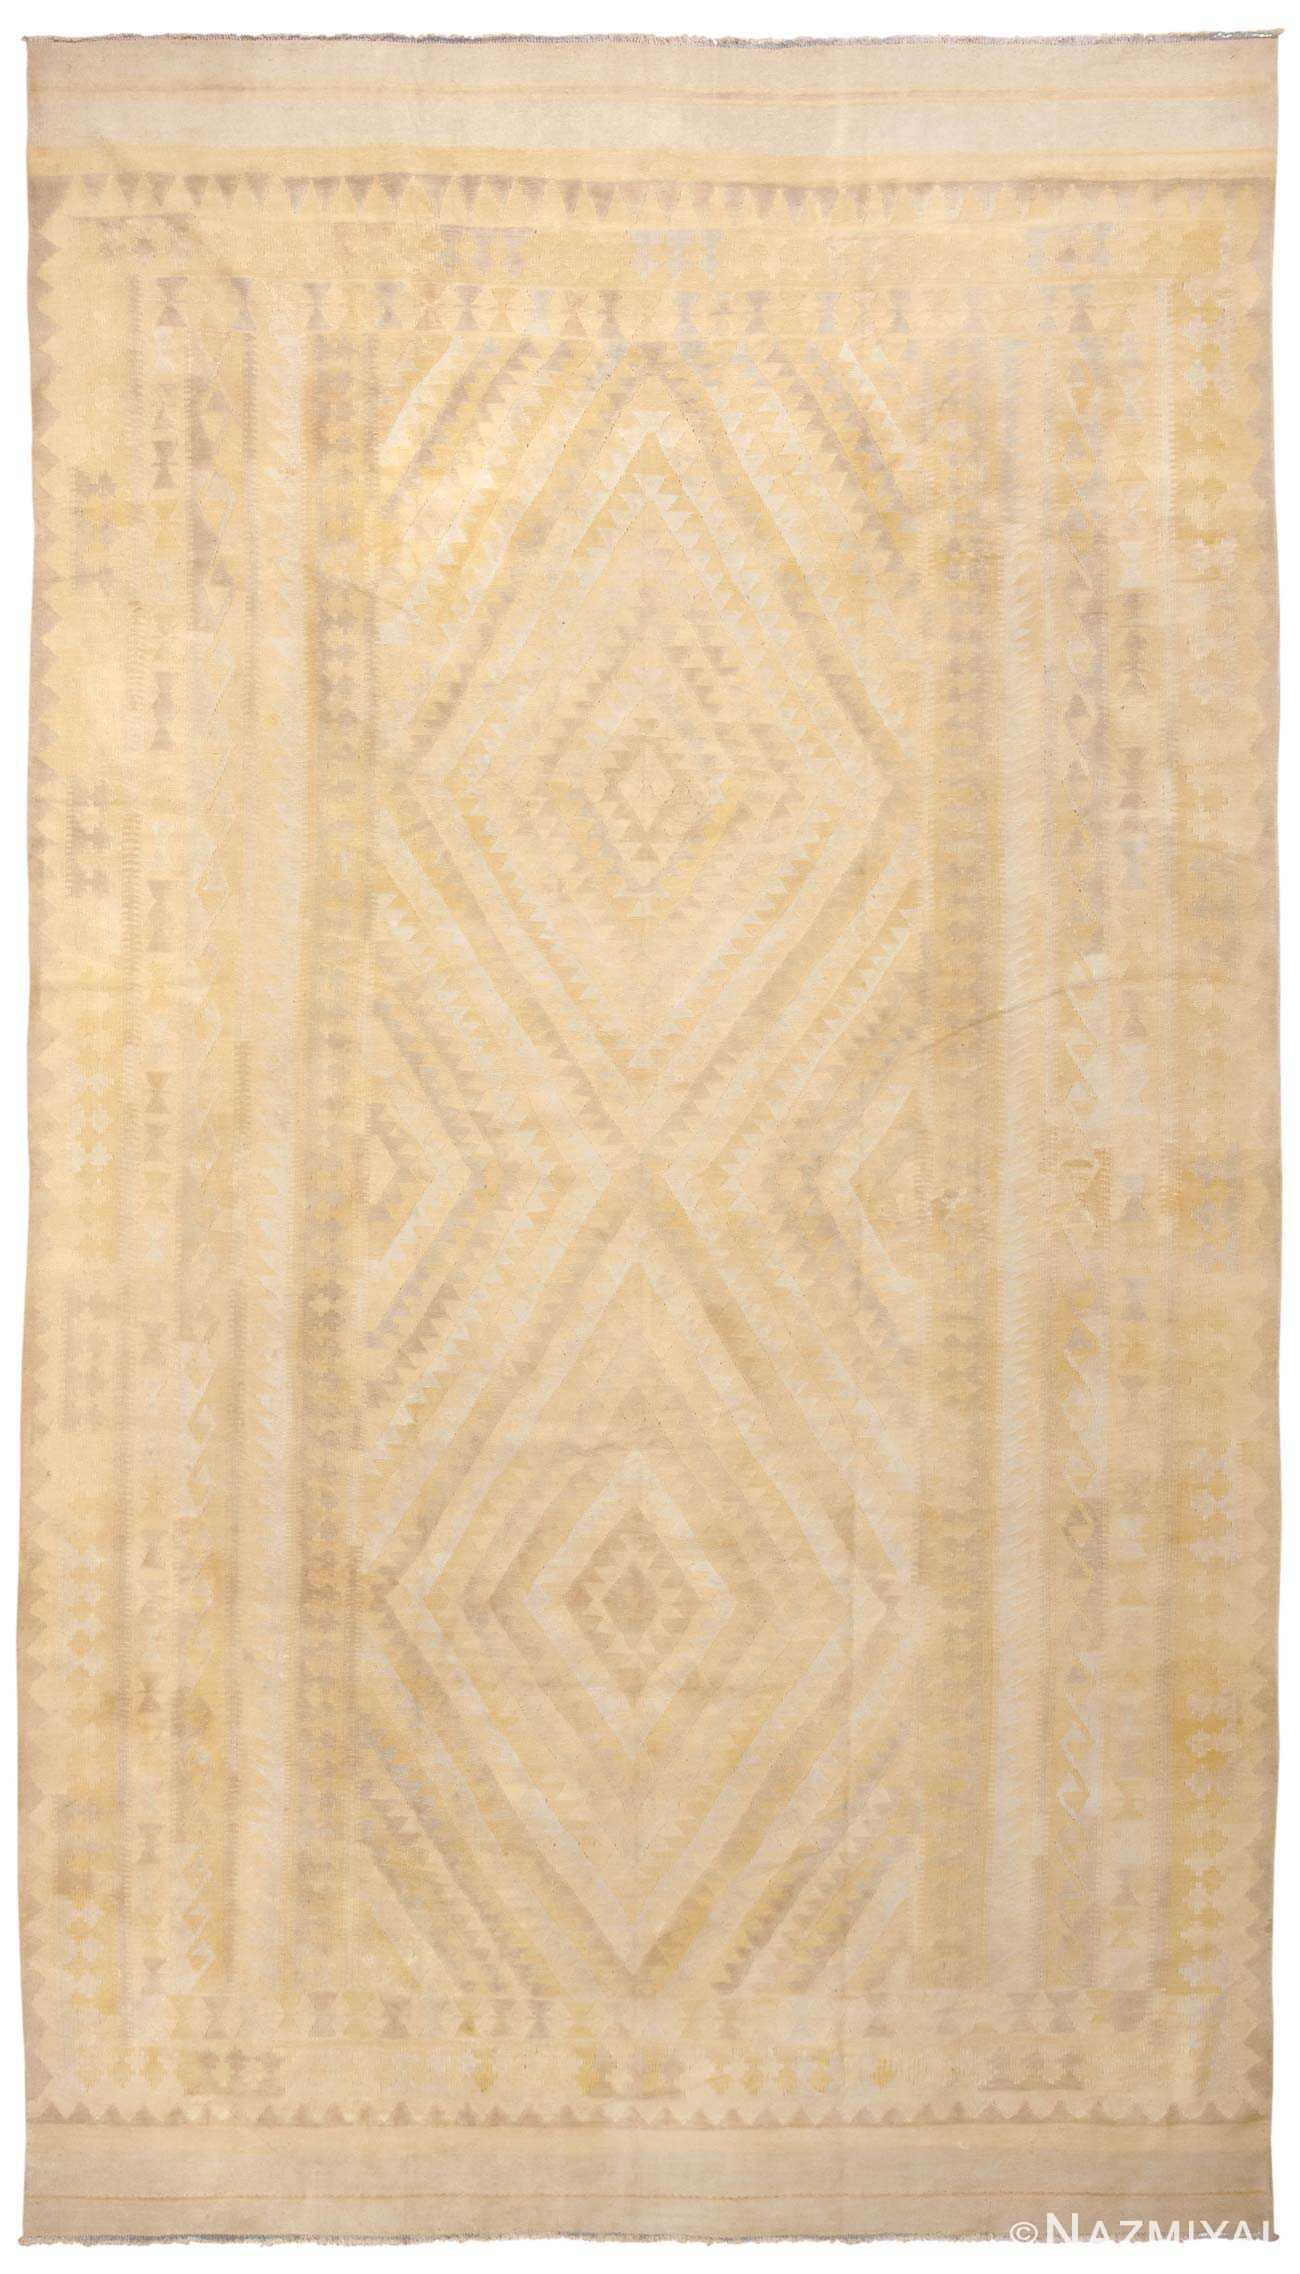 Antique Dhurry Indian Rug 44919 Detail/Large View